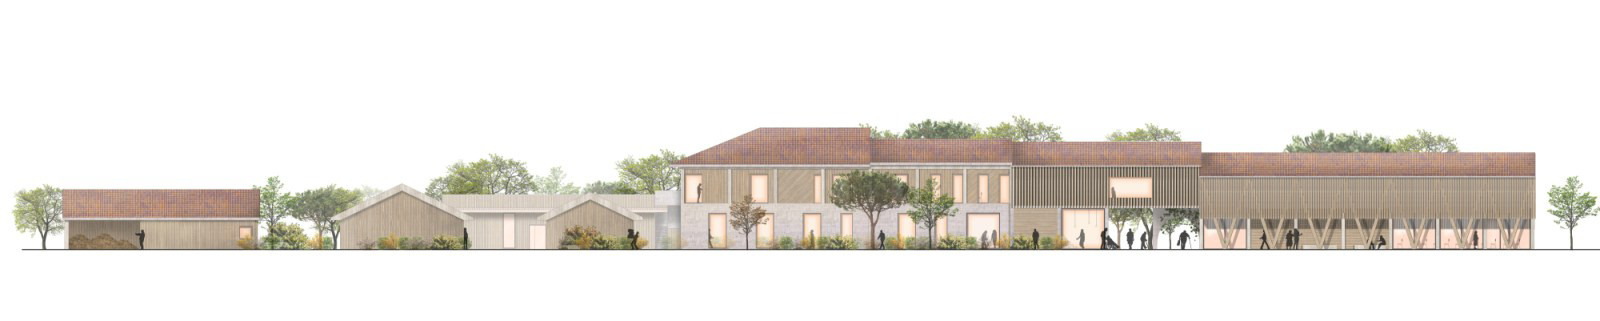 Alzheimers village in France designed by Nord Architects